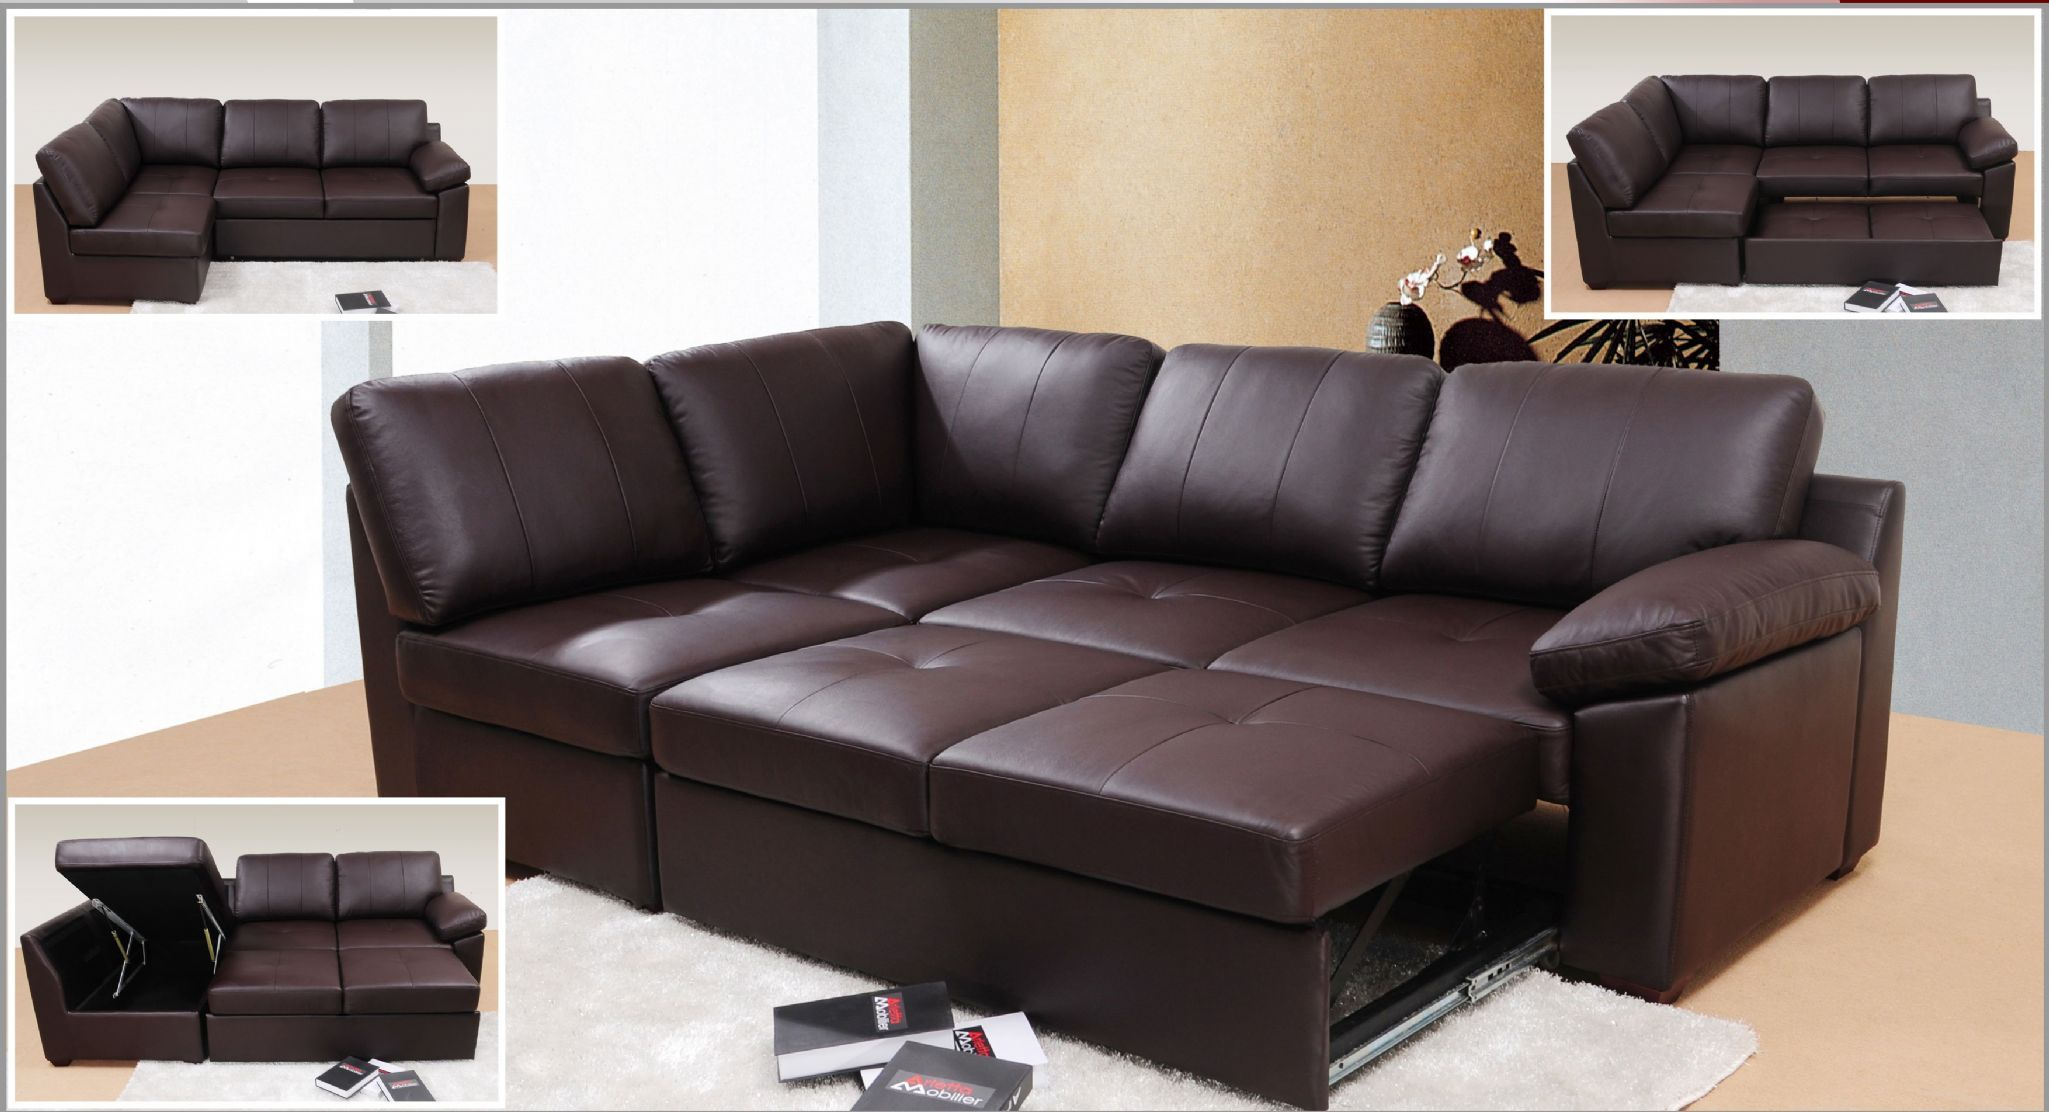 Bed And Couch Http Infolitico Com Bed And Couch For